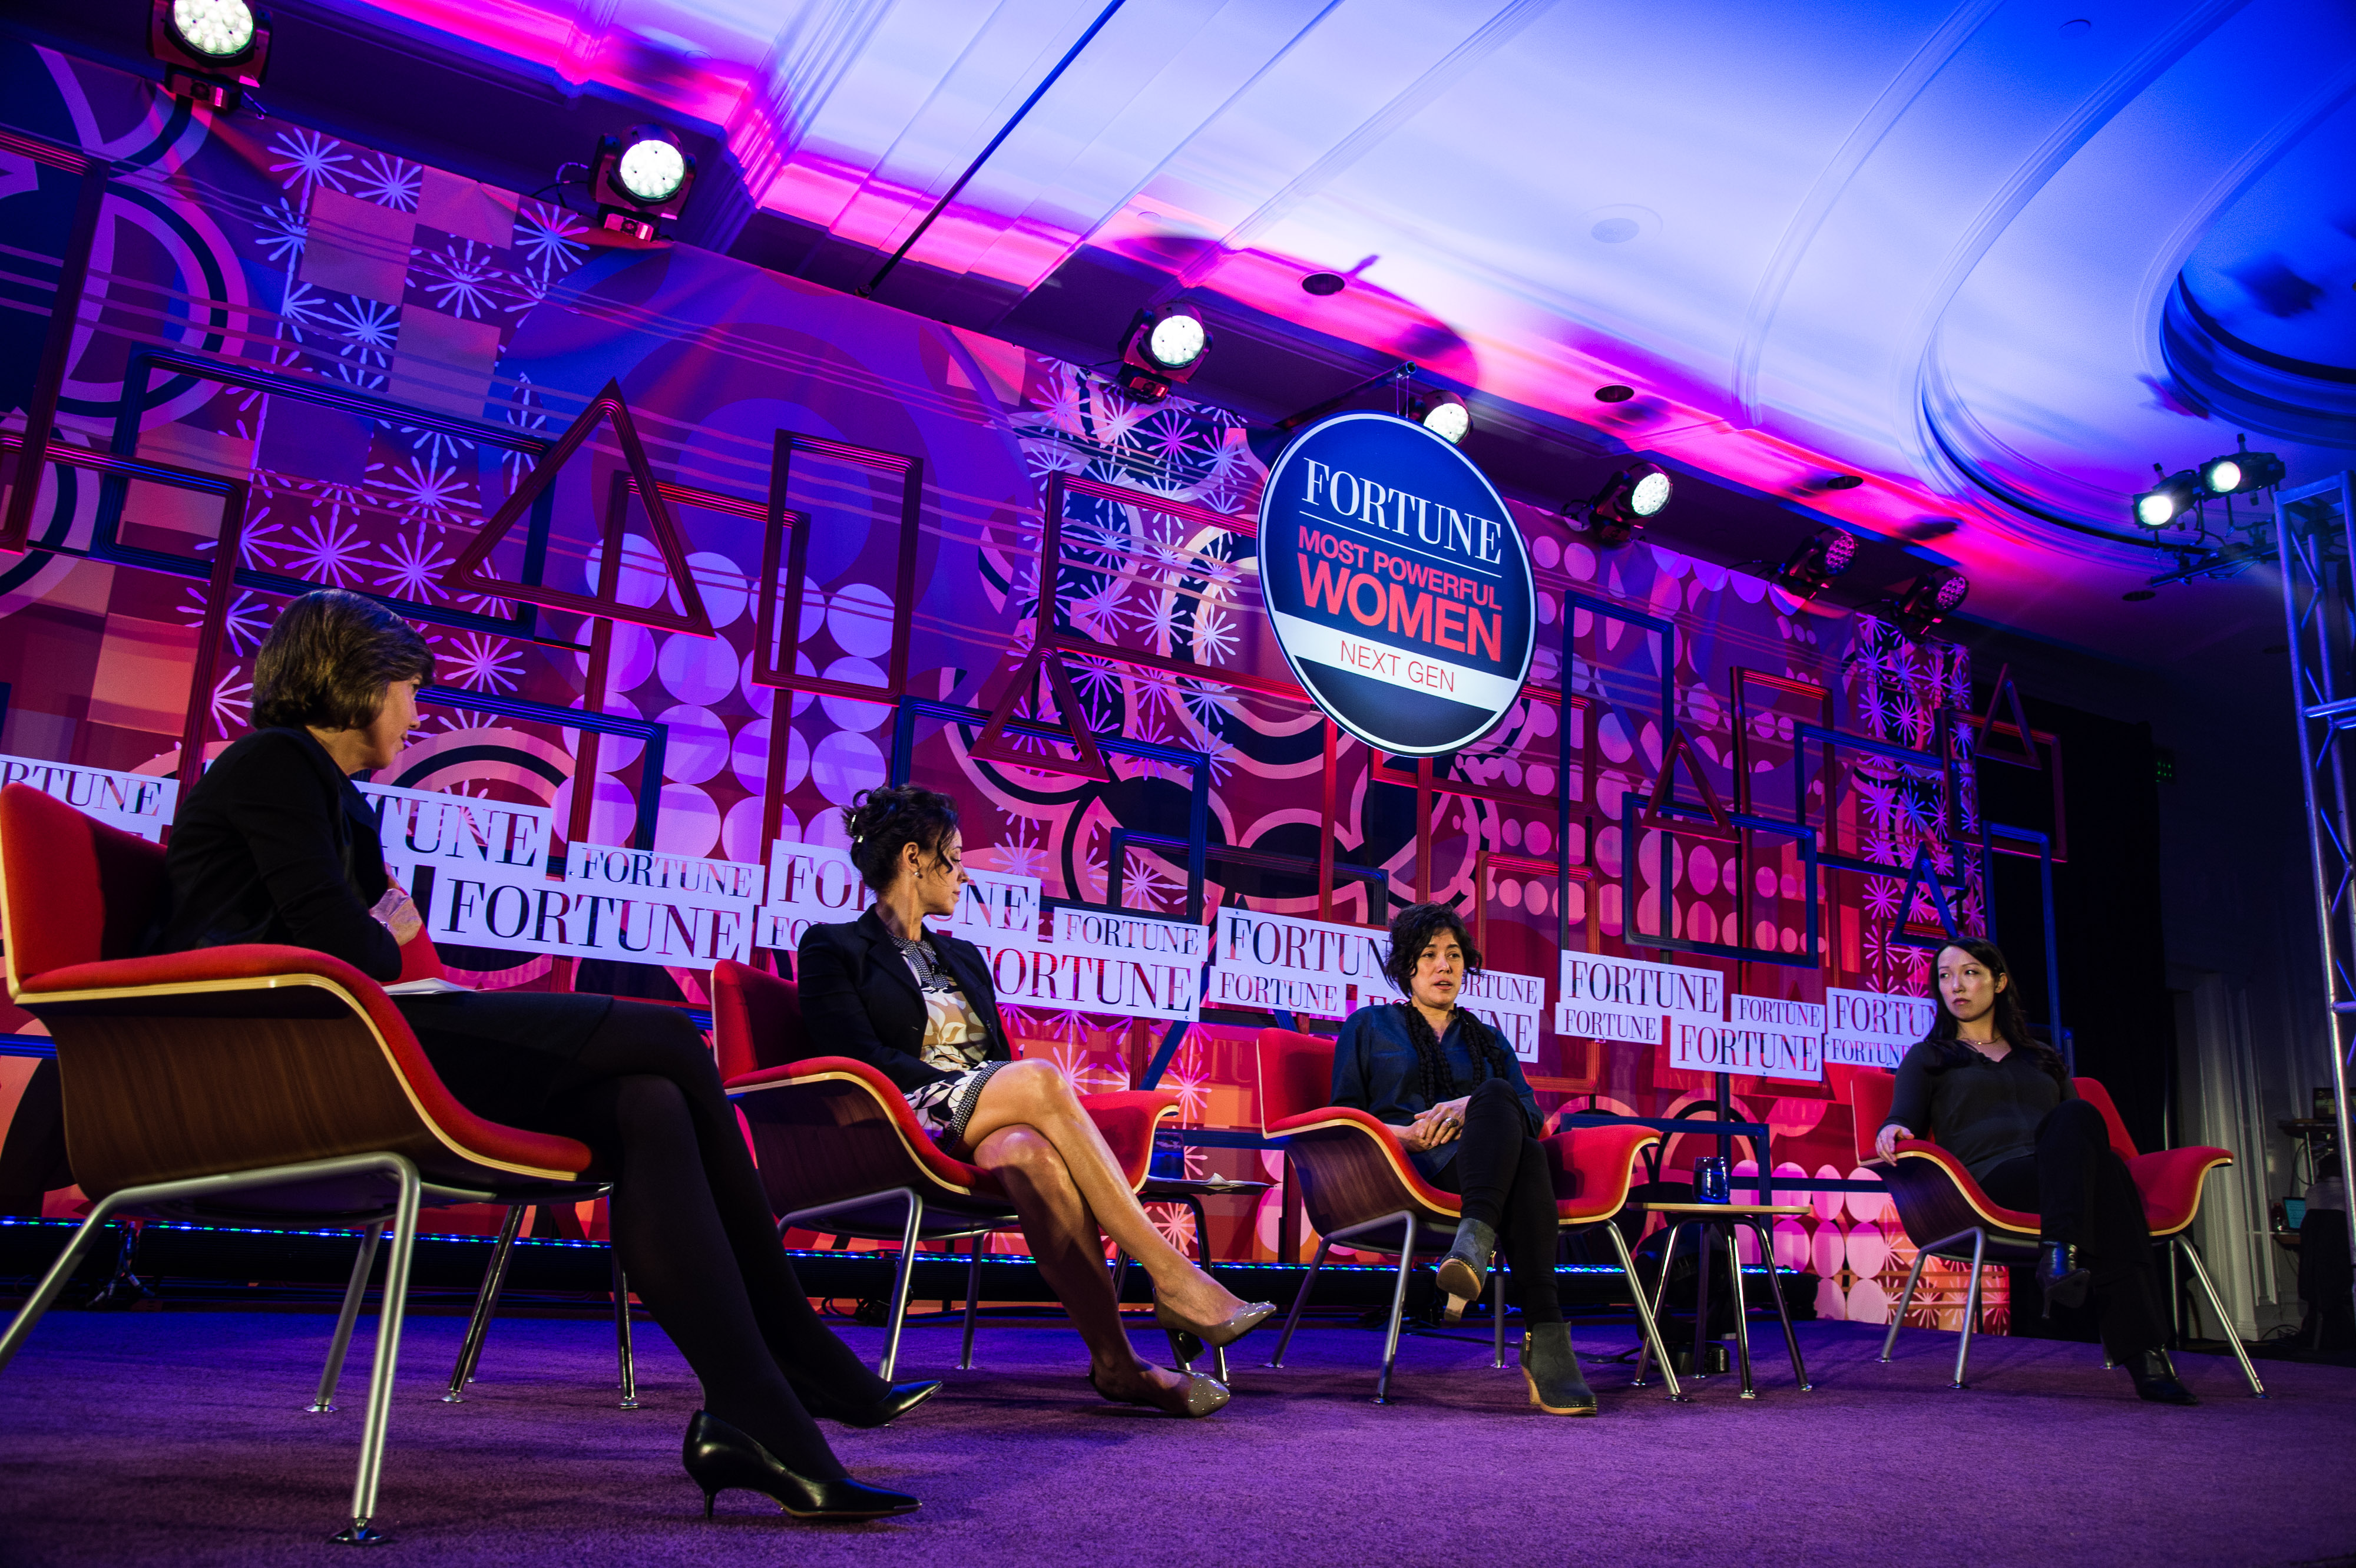 From left to right: Fortune Senior Editor at Large Pattie Sellers, former Microsoft executive Gerri Elliott, Flickr founder Caterina Fake and Hearsay founder Clarah Shih.